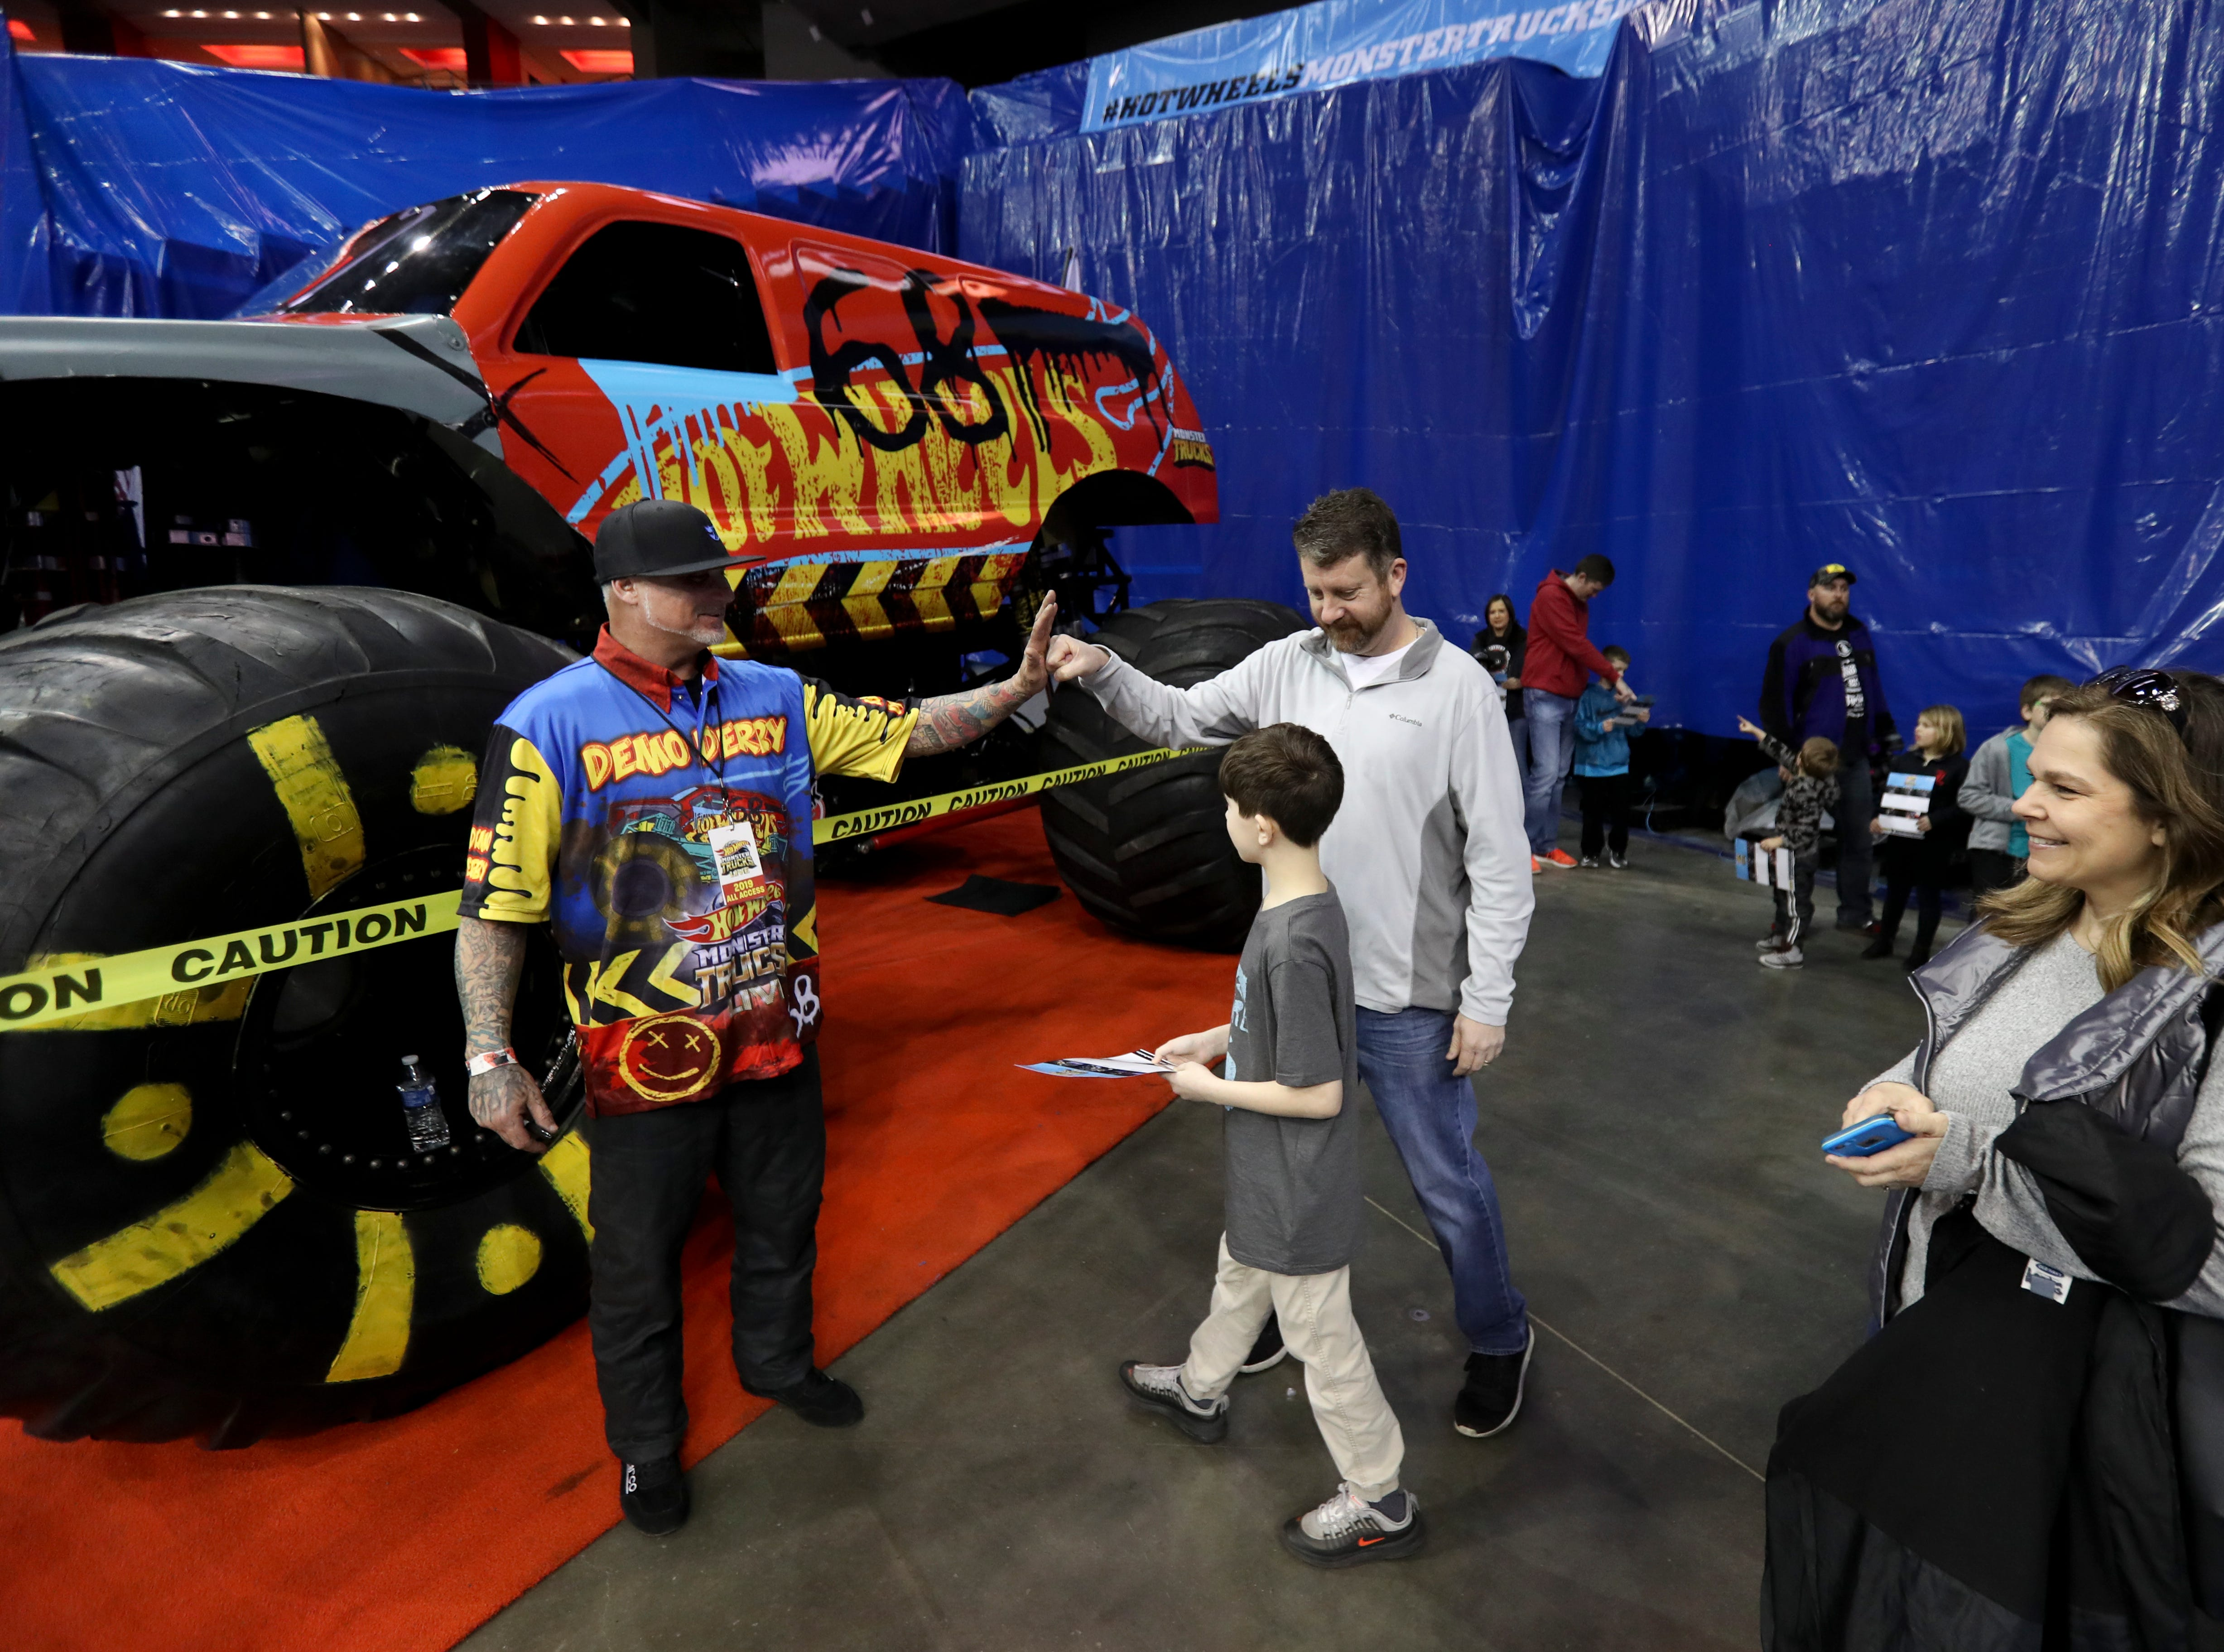 Louisville local Derick Anson, driver of Demo Derby, signs autographs during the Crash Zone Party before the Hot Wheels Monster Trucks show at the KFC Yum Center on March 16.